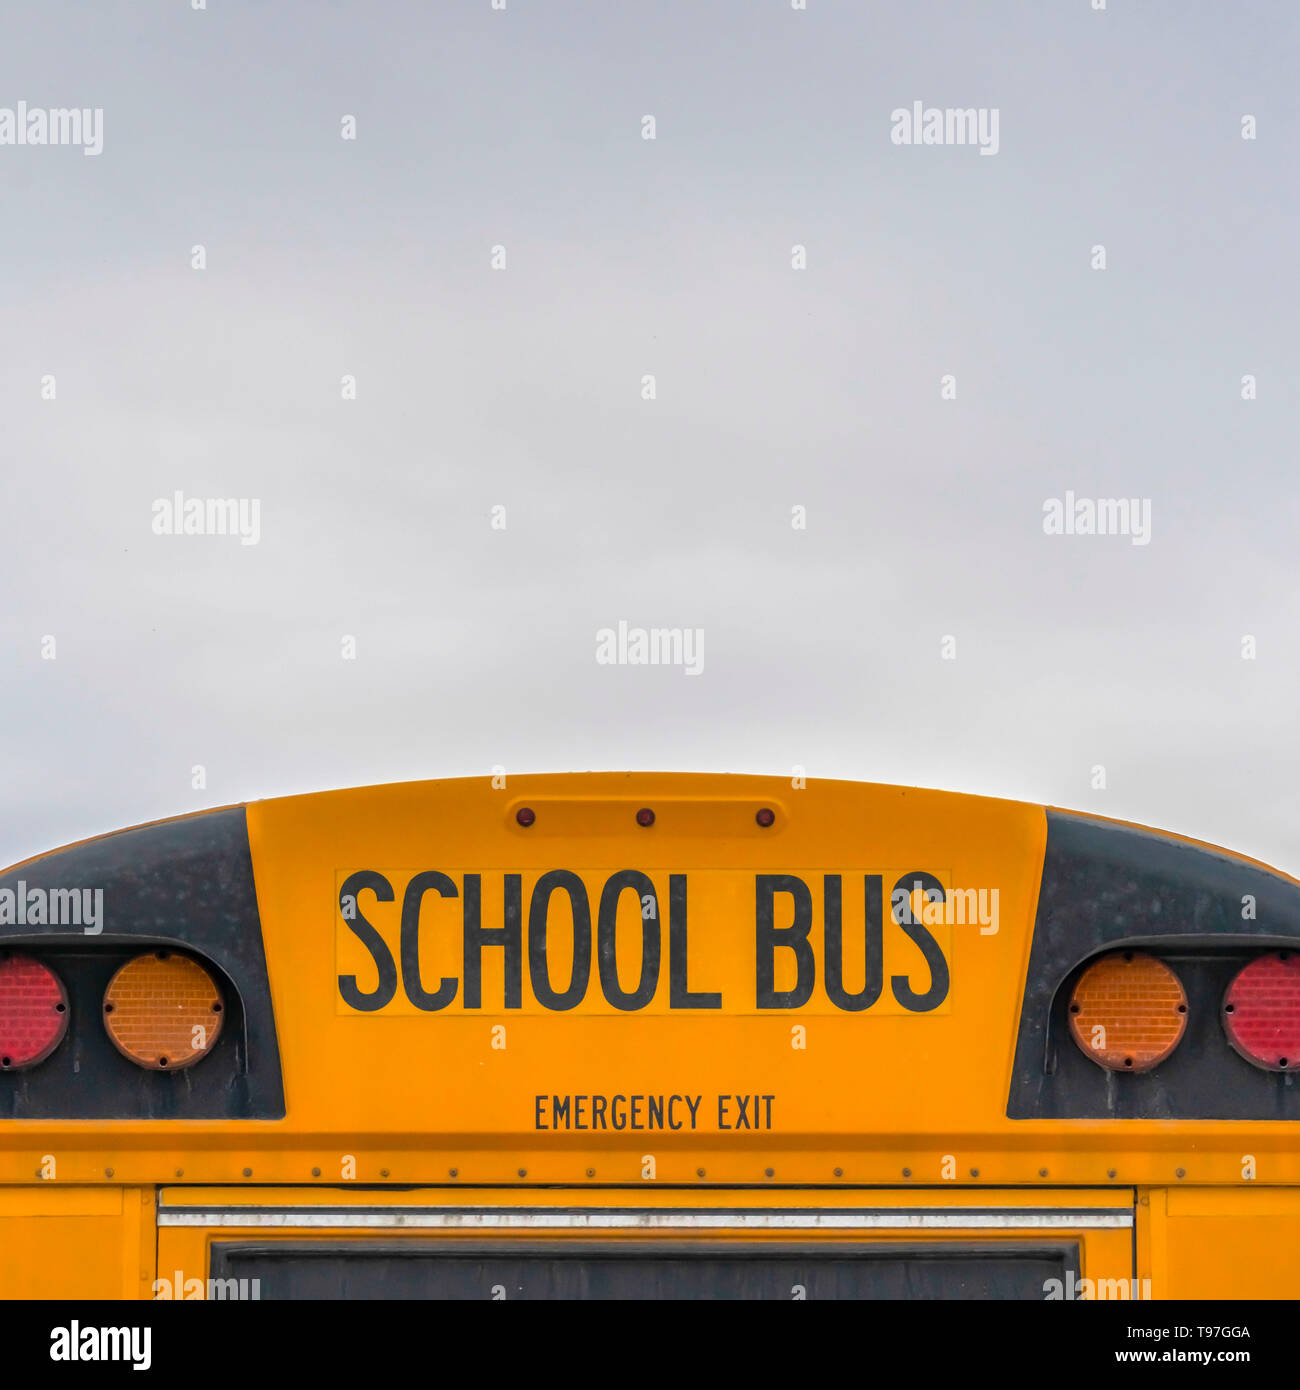 Square Rear of a yellow school bus with signal lights and emergency exit window - Stock Image